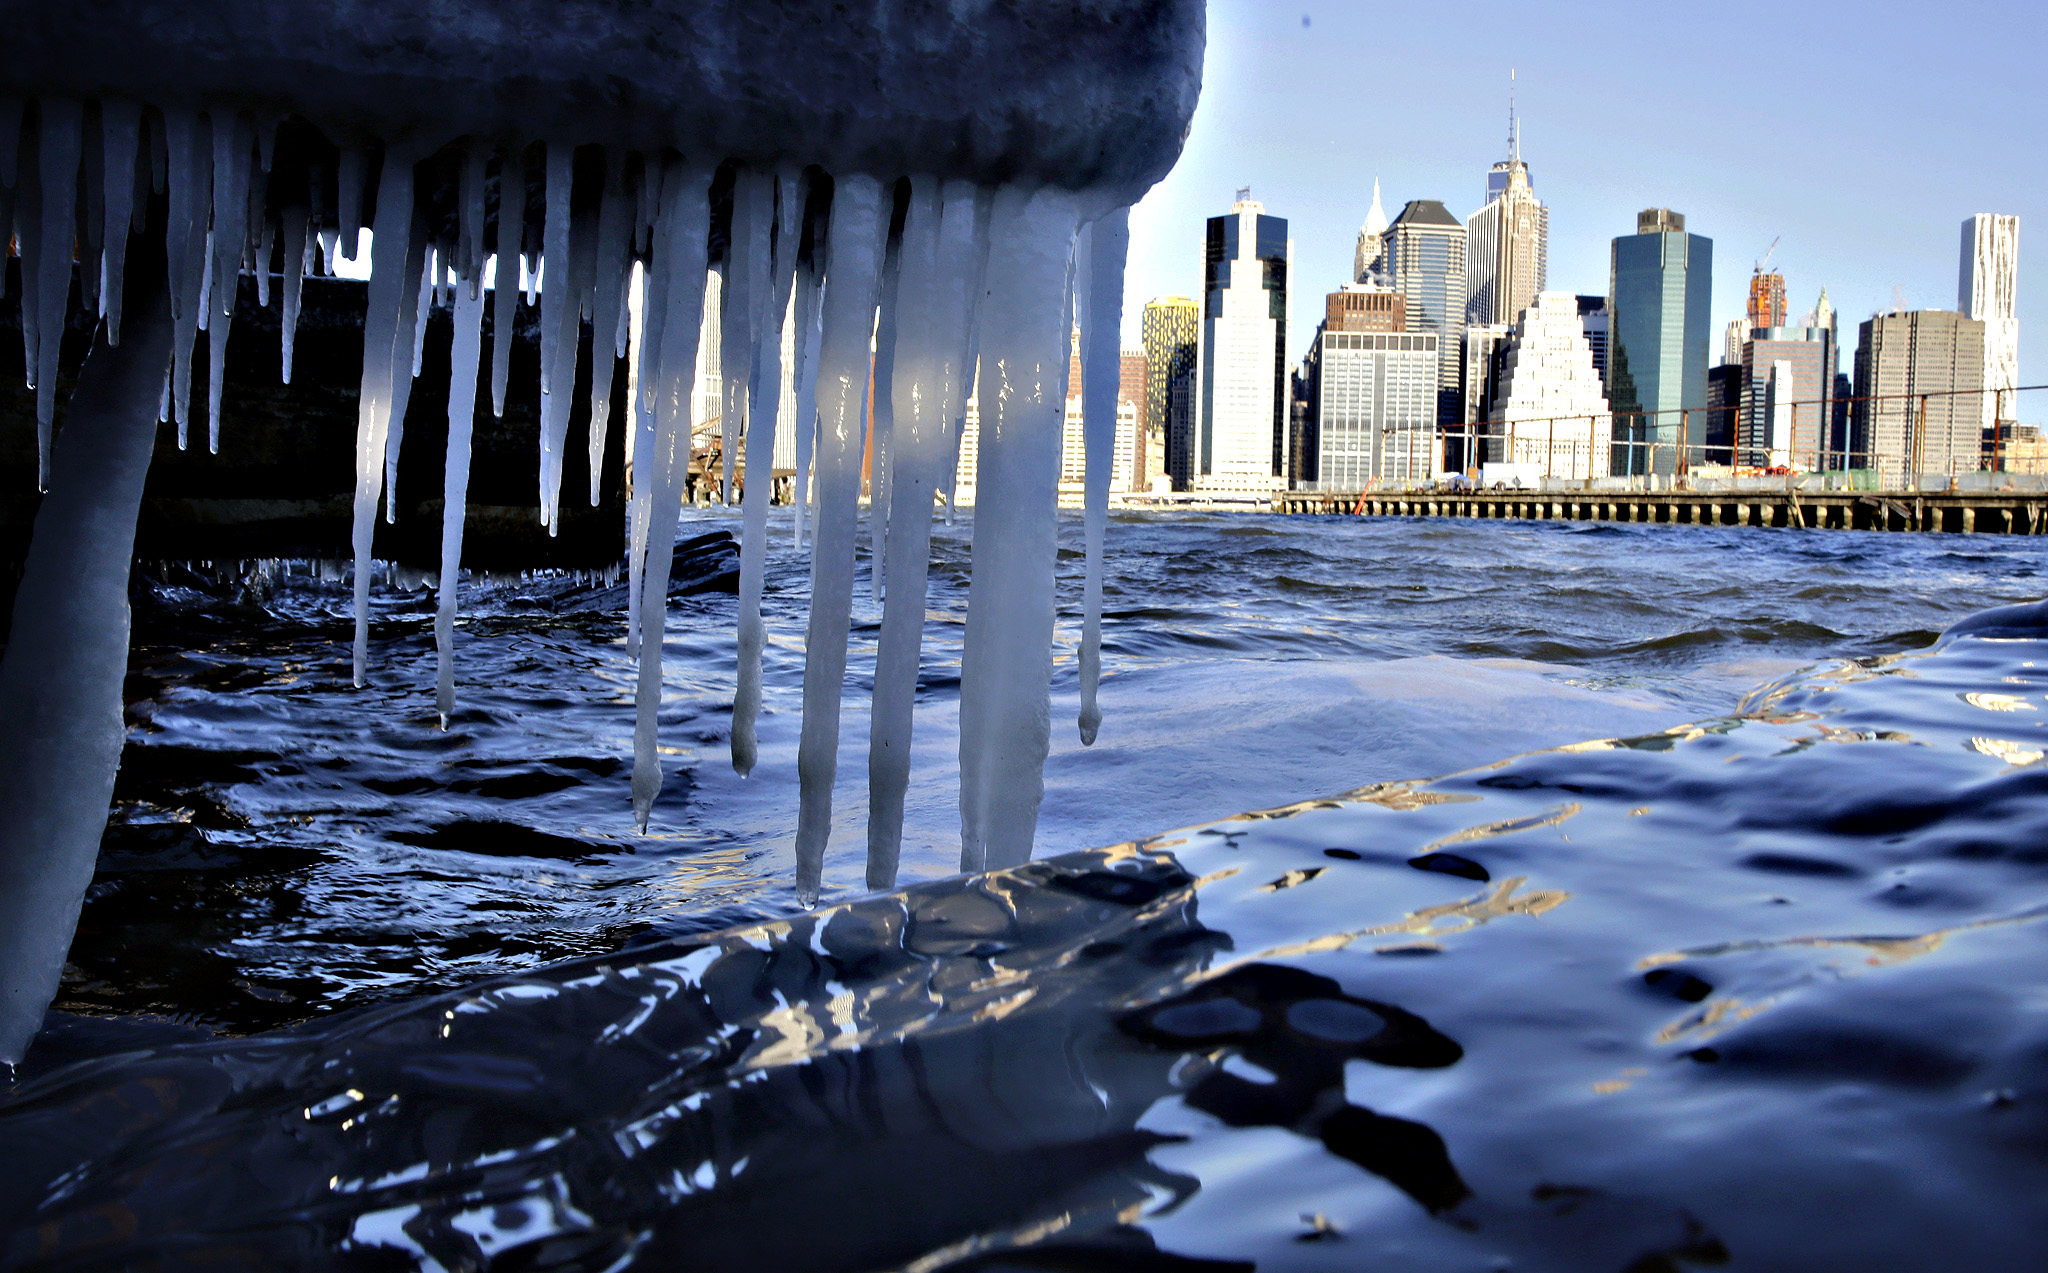 Icicles form on the waterfront in the borough of Brooklyn in New York on Thursday, Jan. 8, 2014. Cold air has sent temperatures plummeting into the single digits around the U.S., with wind chills driving them even lower. Lower Manhattan appears in the background.